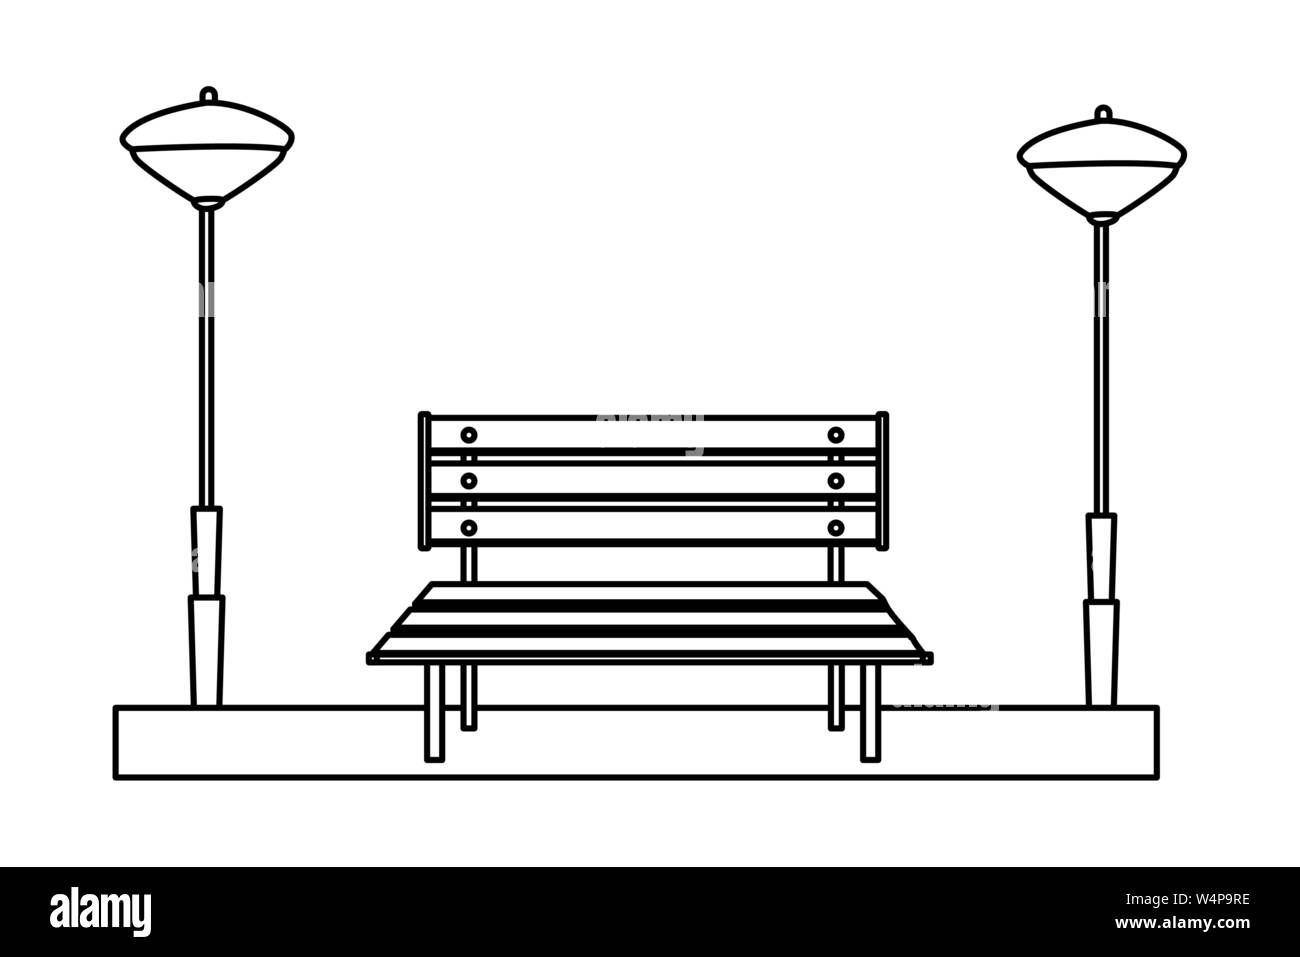 Groovy Wooden Park Bench Isolated Cartoon In Black And White Stock Machost Co Dining Chair Design Ideas Machostcouk